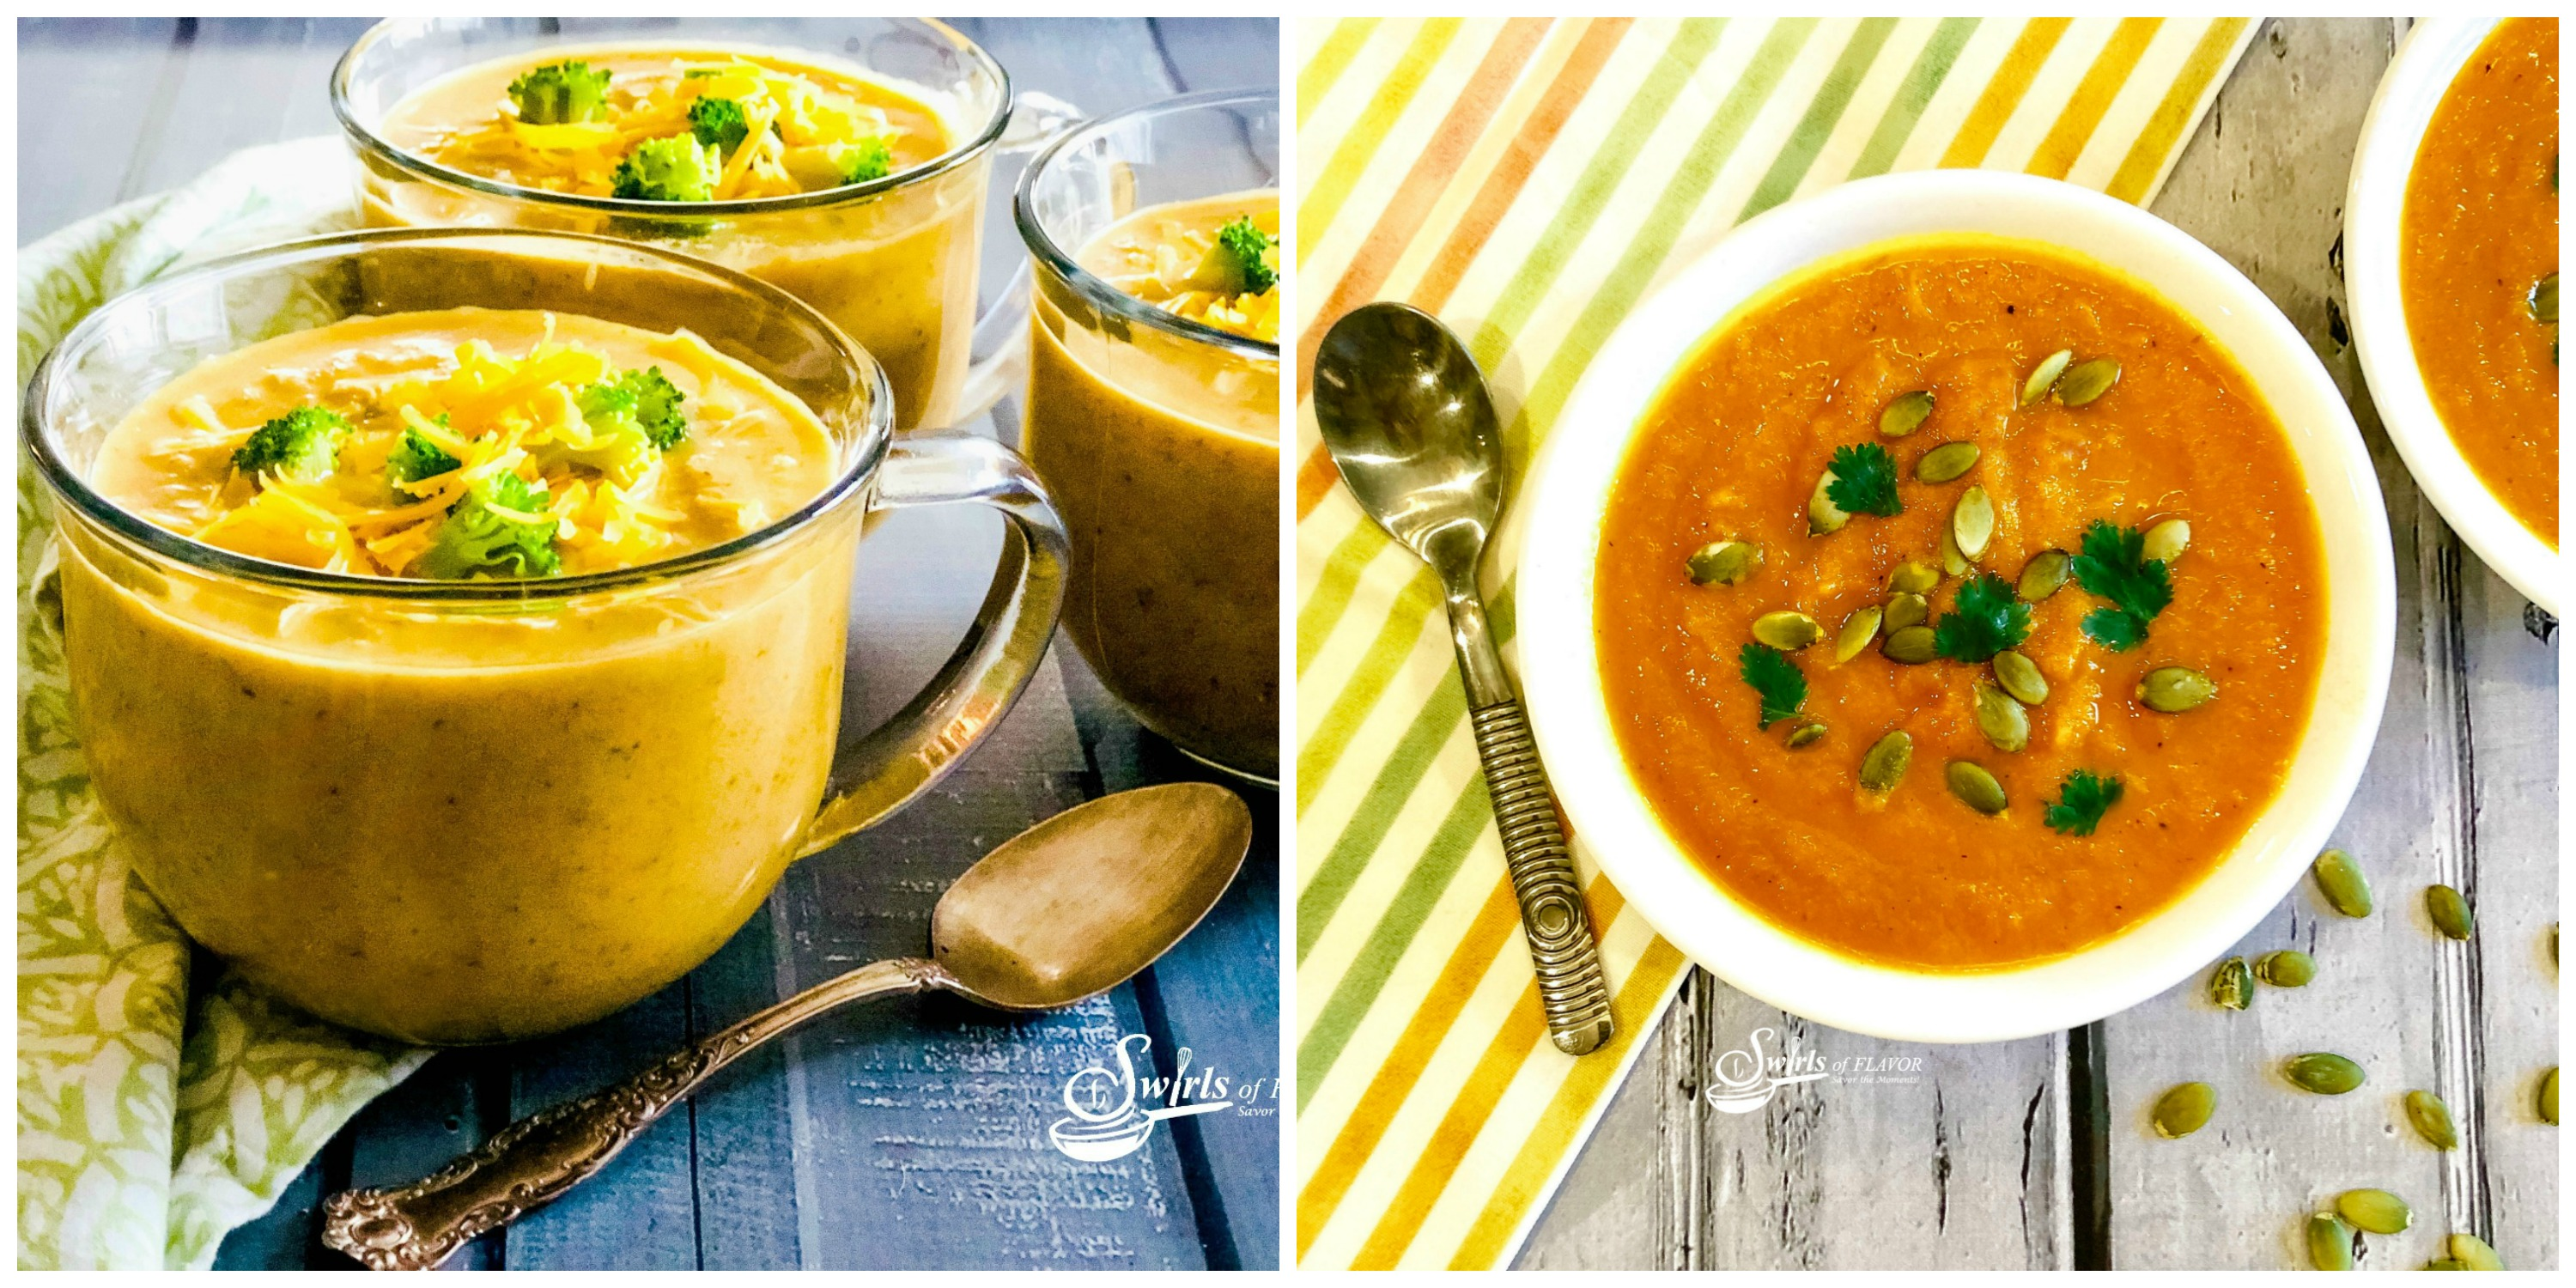 Broccoli Cheddar Soup and Ginger Carrot Soup